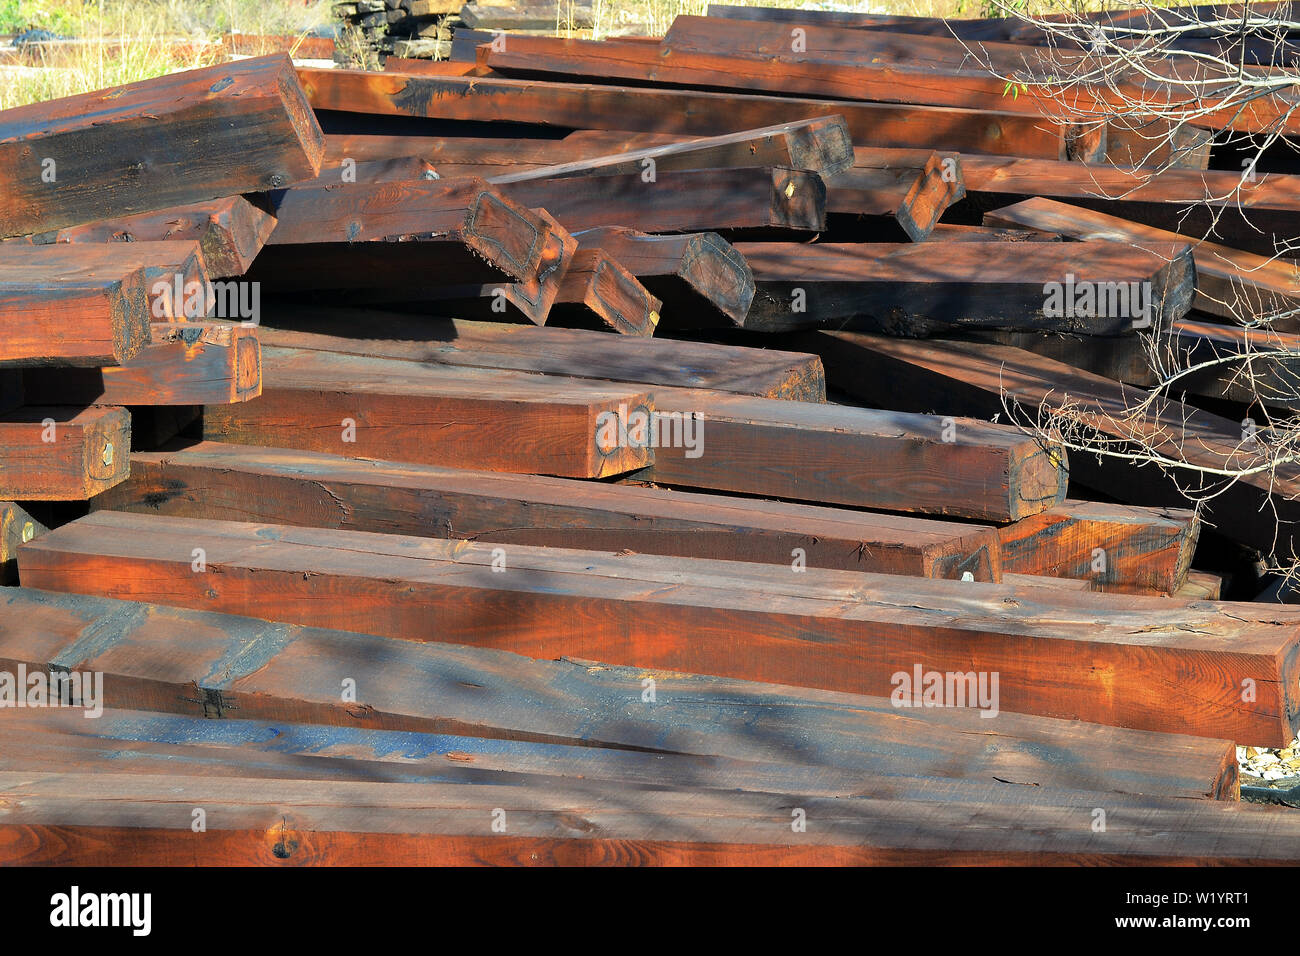 Wooden Sleeper Stock Photos & Wooden Sleeper Stock Images - Alamy